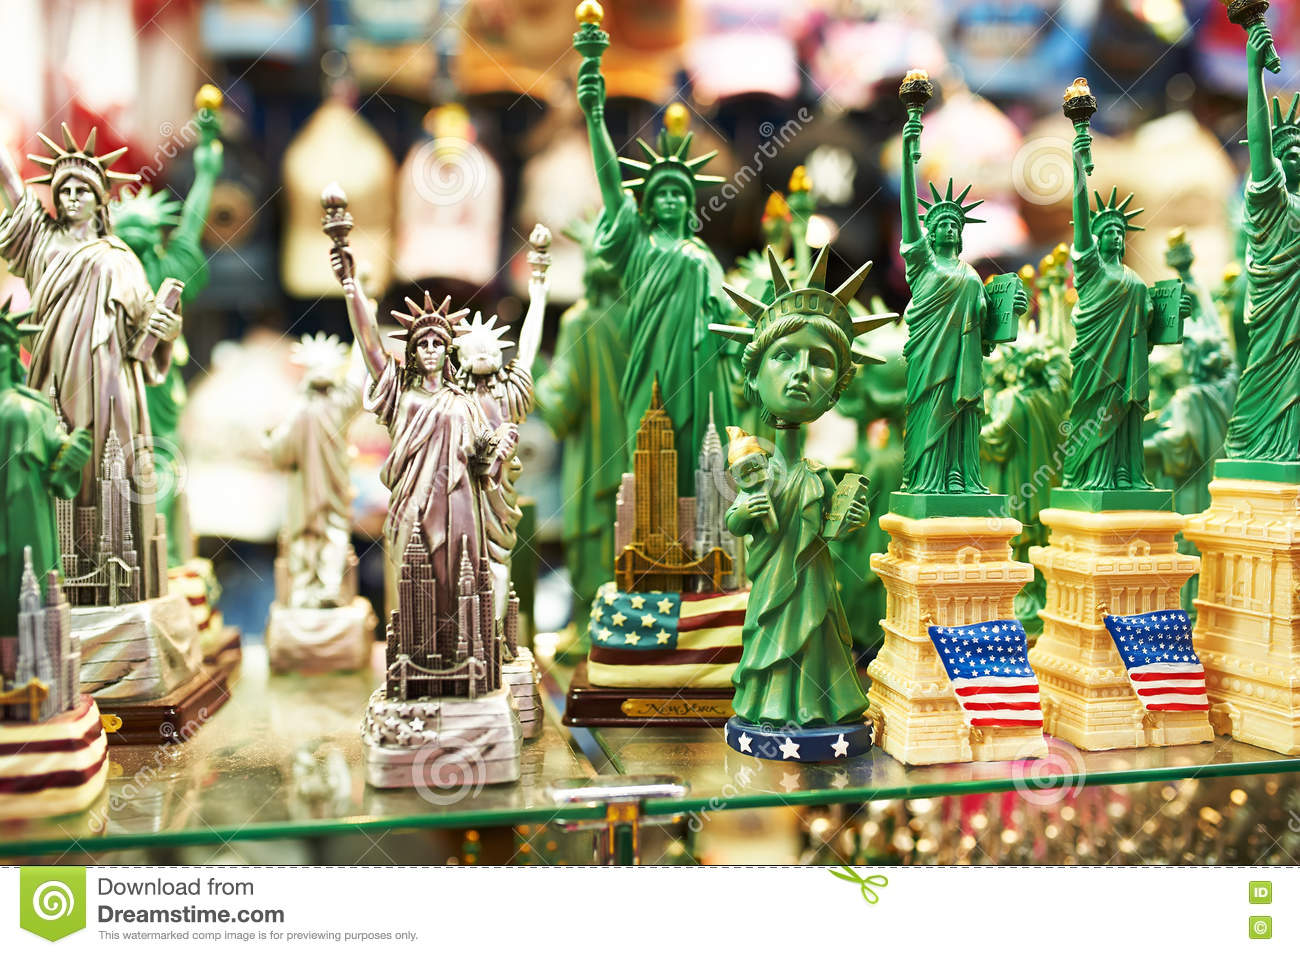 Statue of liberty souvenirs at a store in new york for Gifts for new yorkers